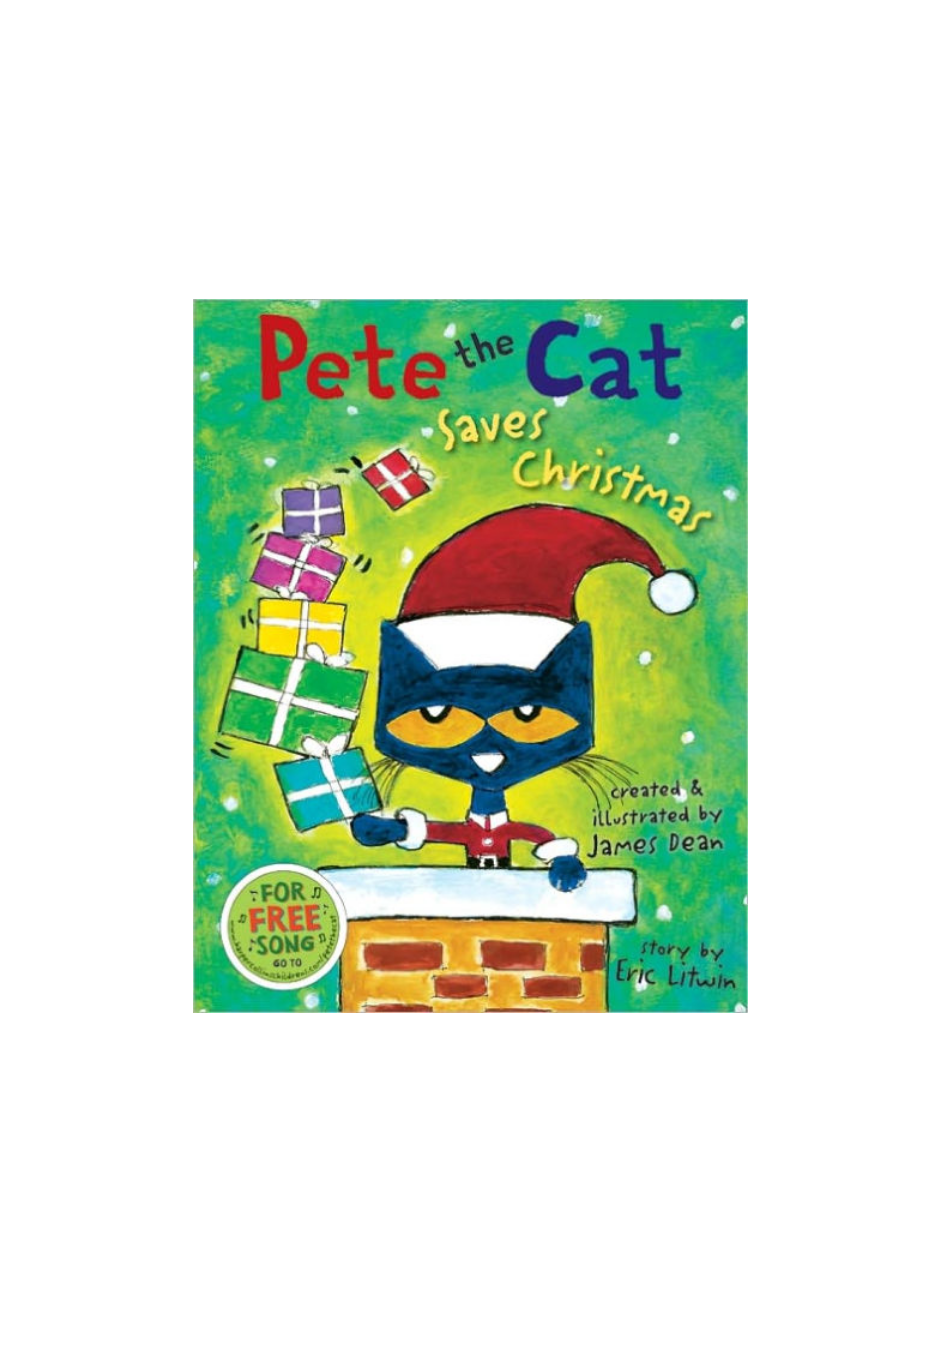 Pete the Cat Saves Christmas by James Dean